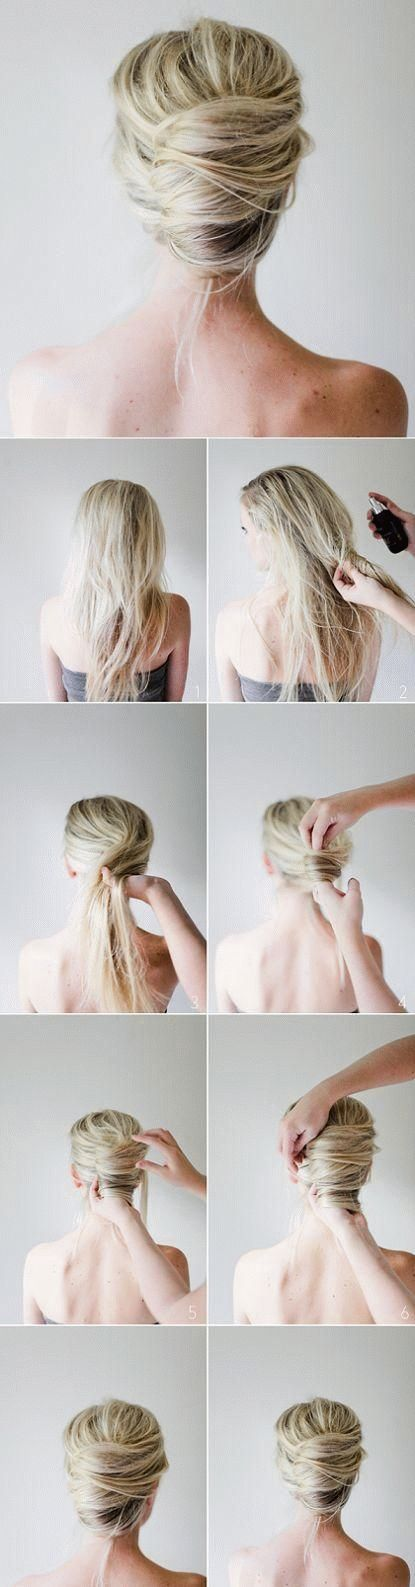 27 Easy Five Minutes Hairstyles Tutorials